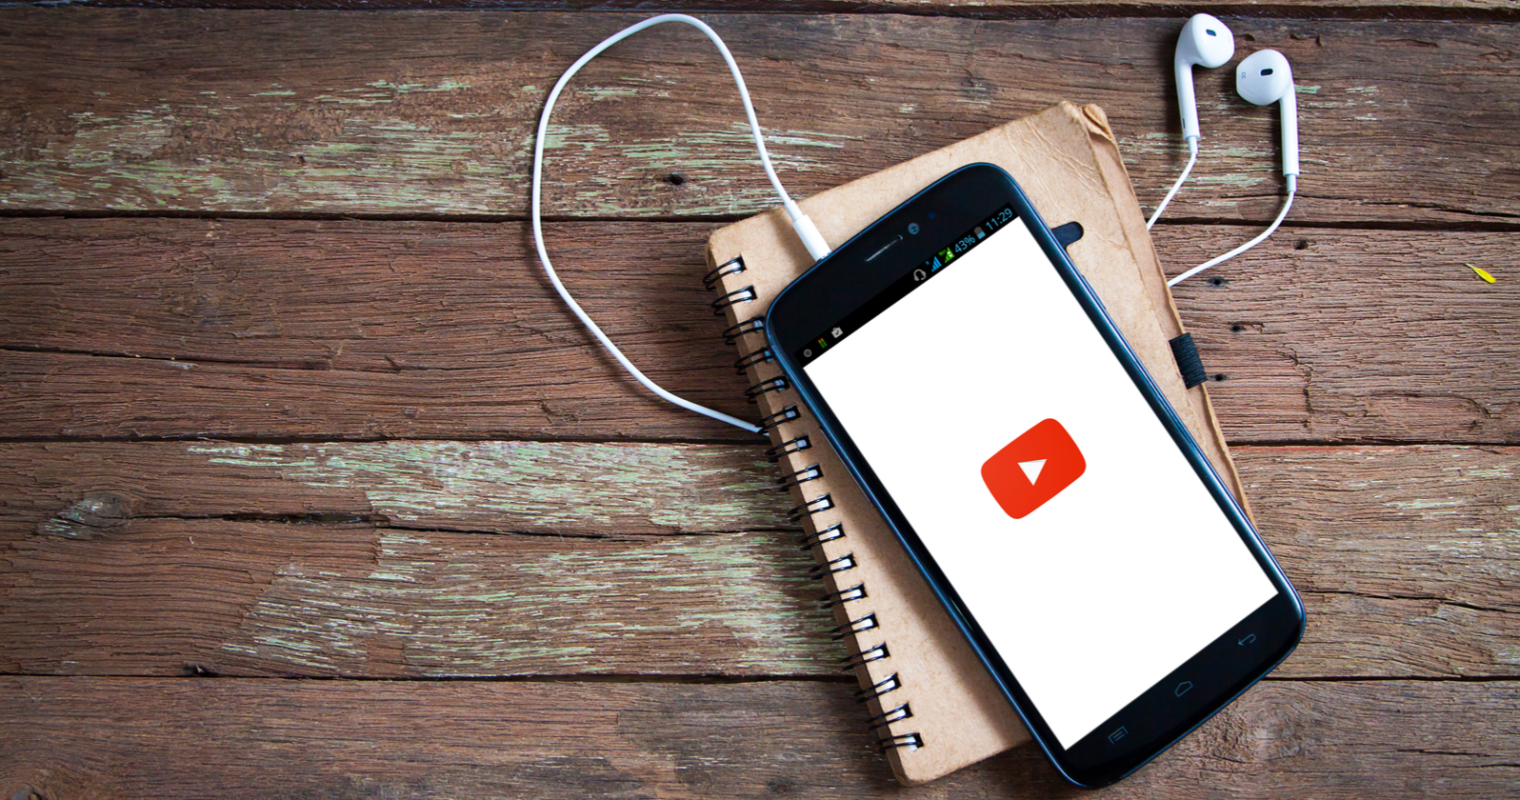 15 Inspiring YouTube Video Ideas to Build Your Brand